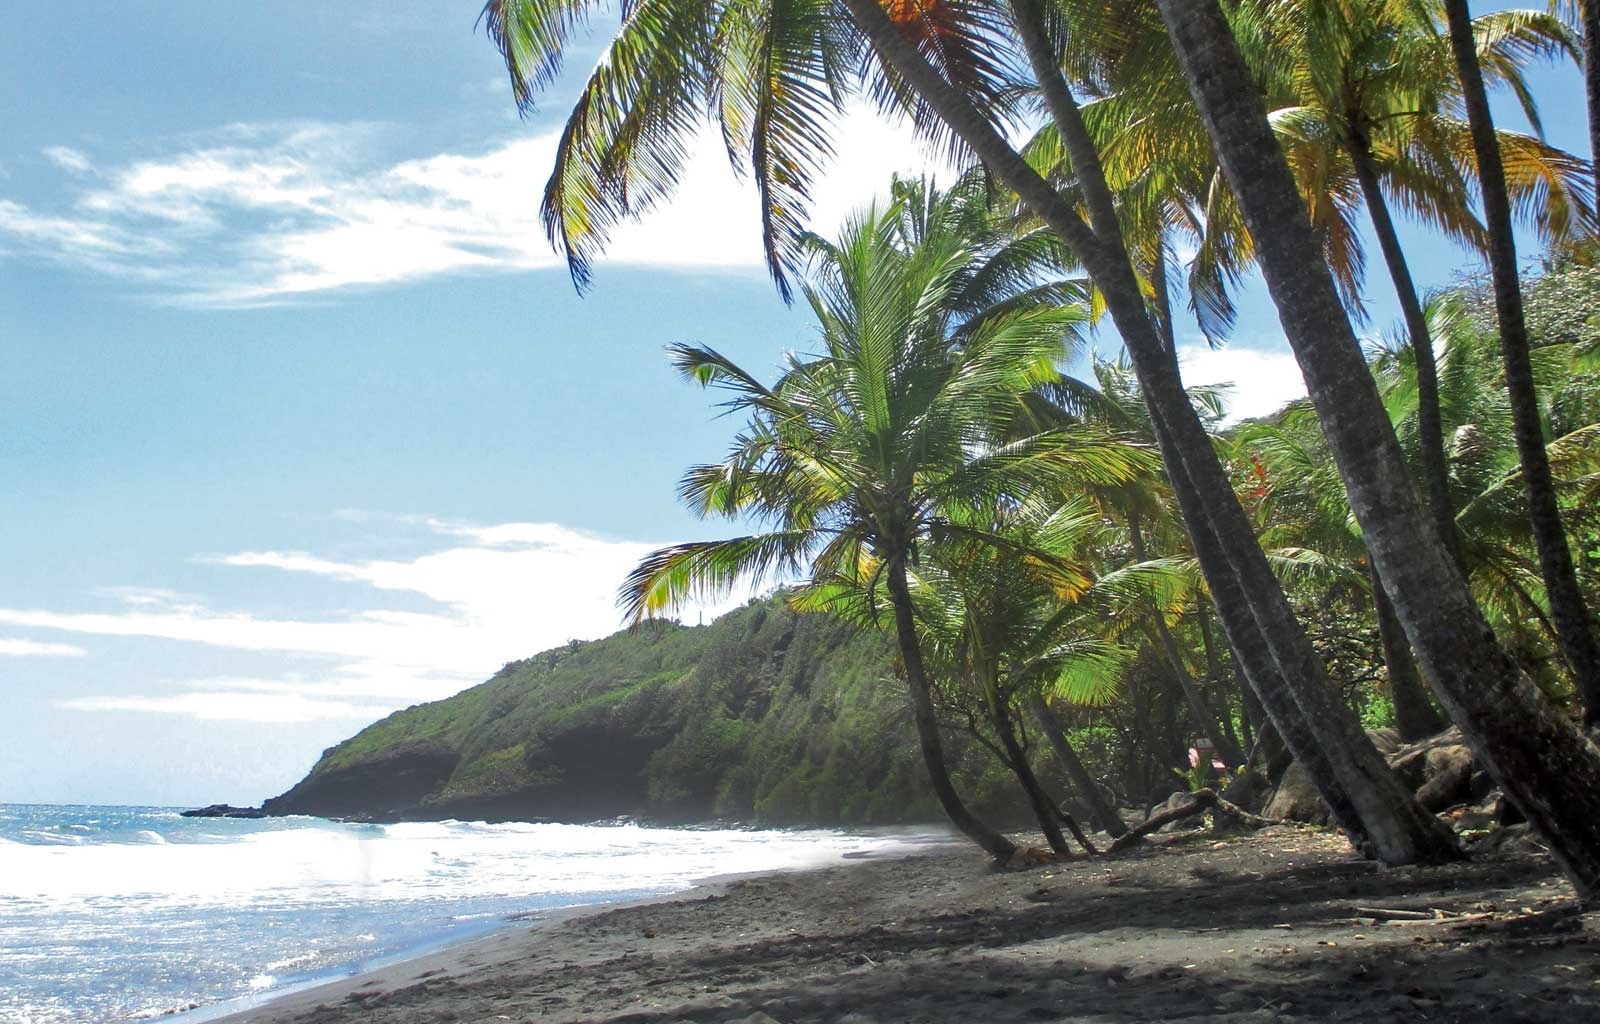 3205_TROIS-RIVIERES-PLAGE-GRANDE-ANSE-GUADELOUPE